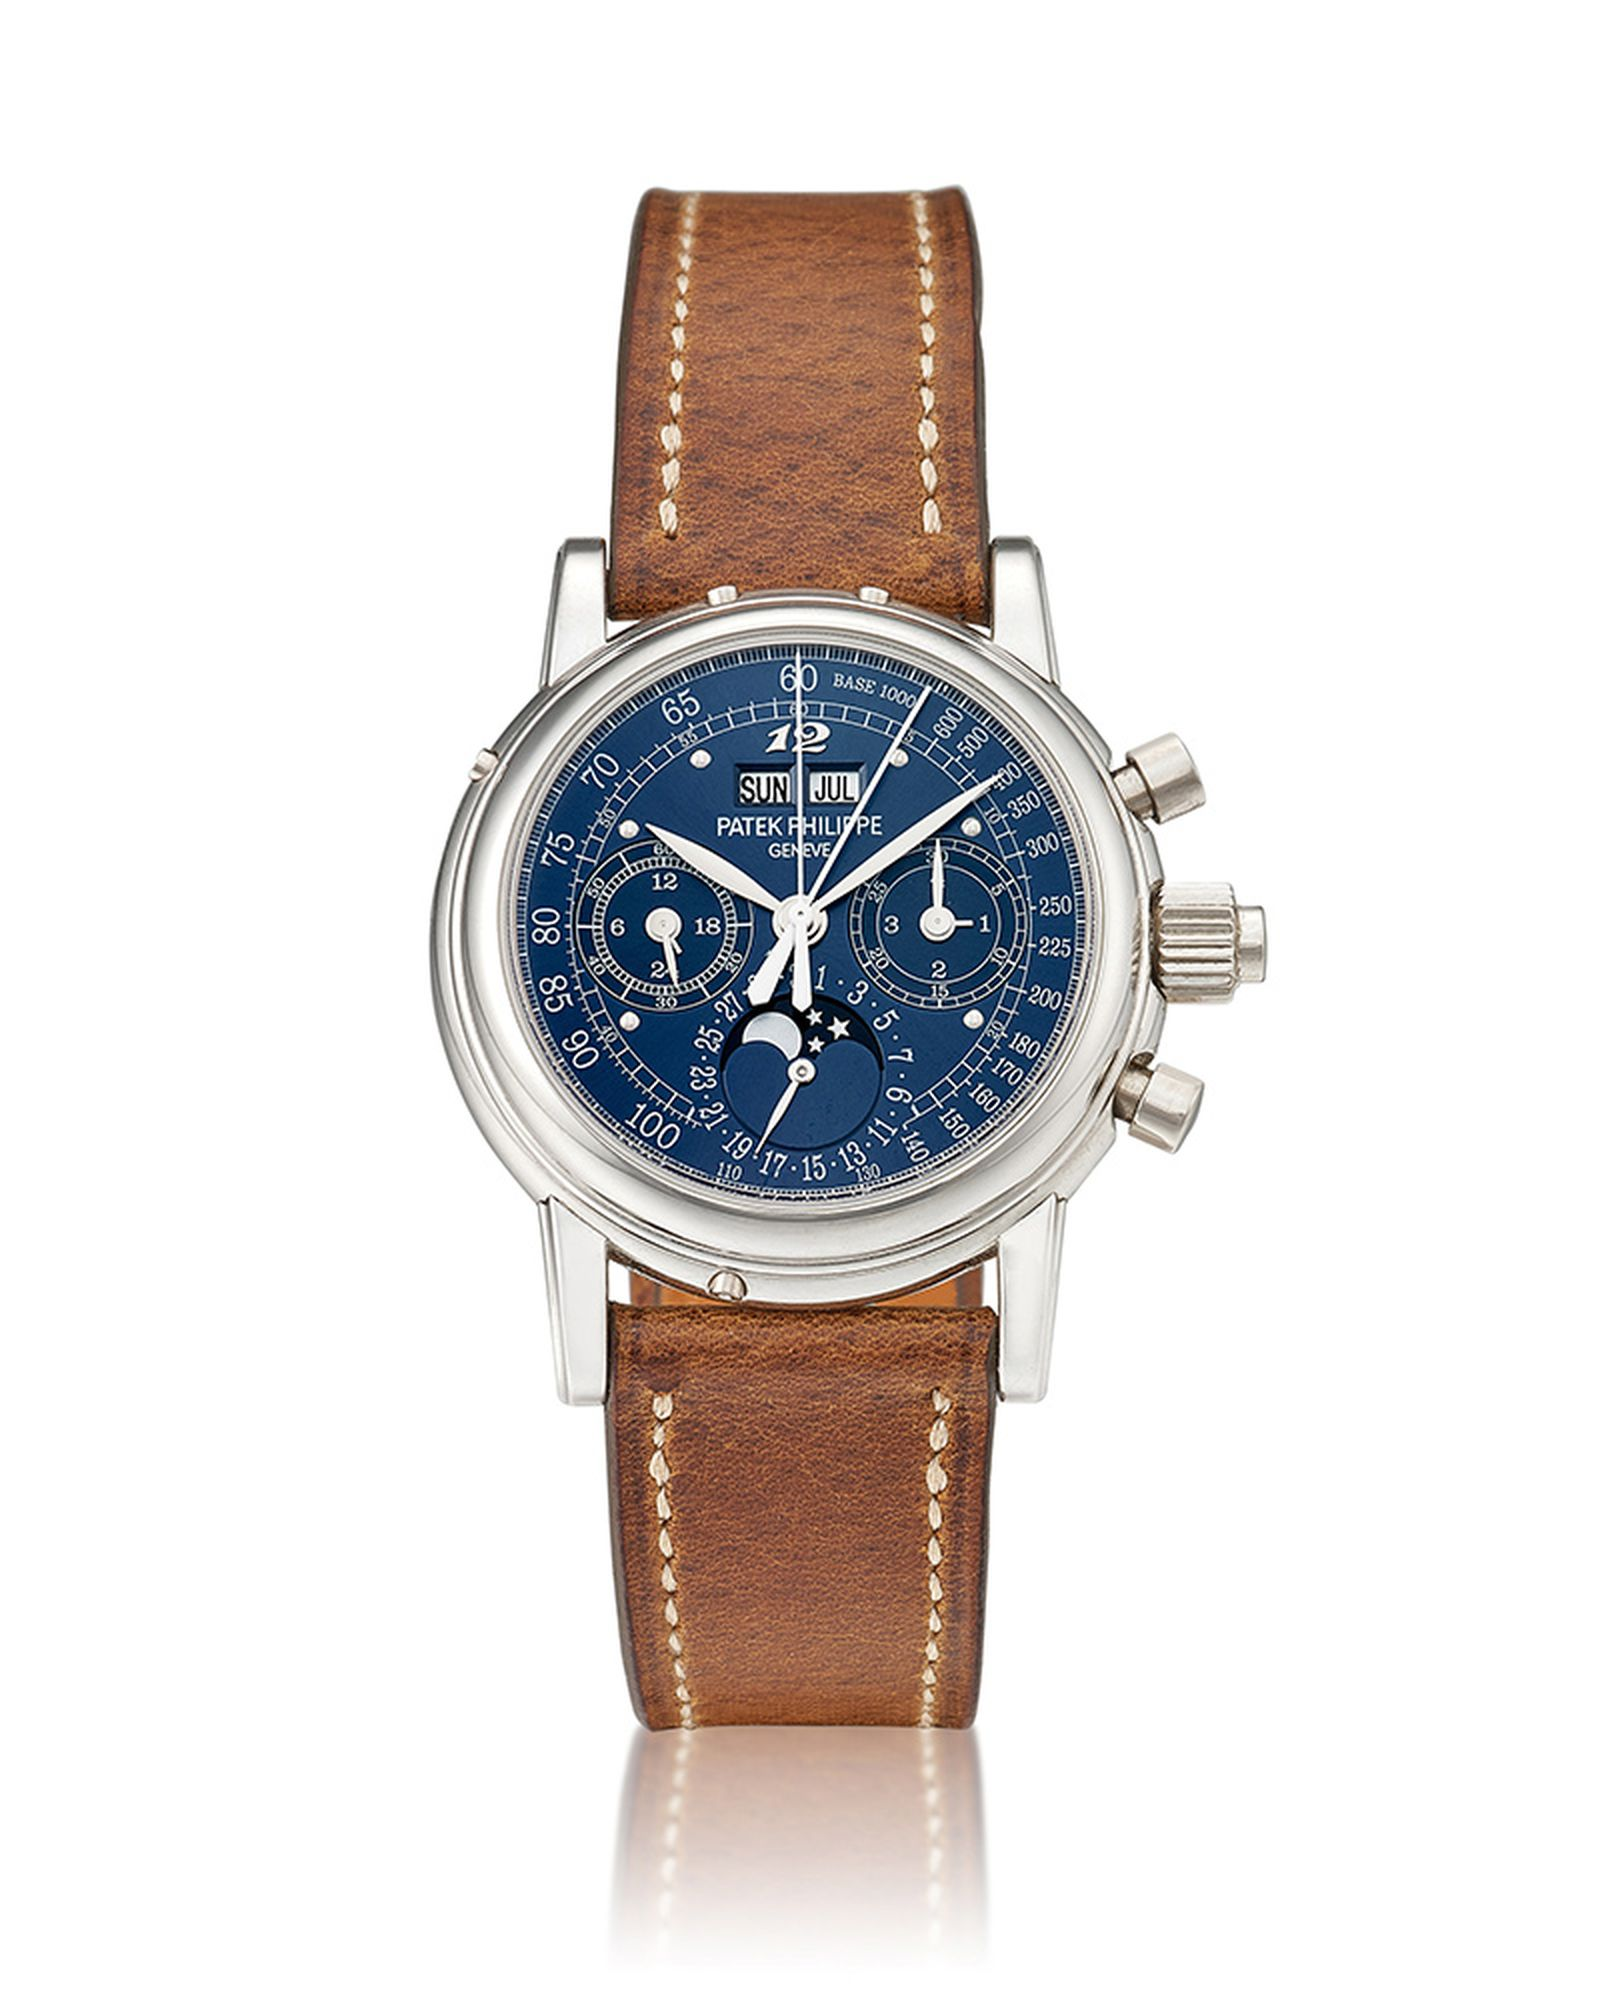 sothebys-hong-kong-important-watch-auction-01